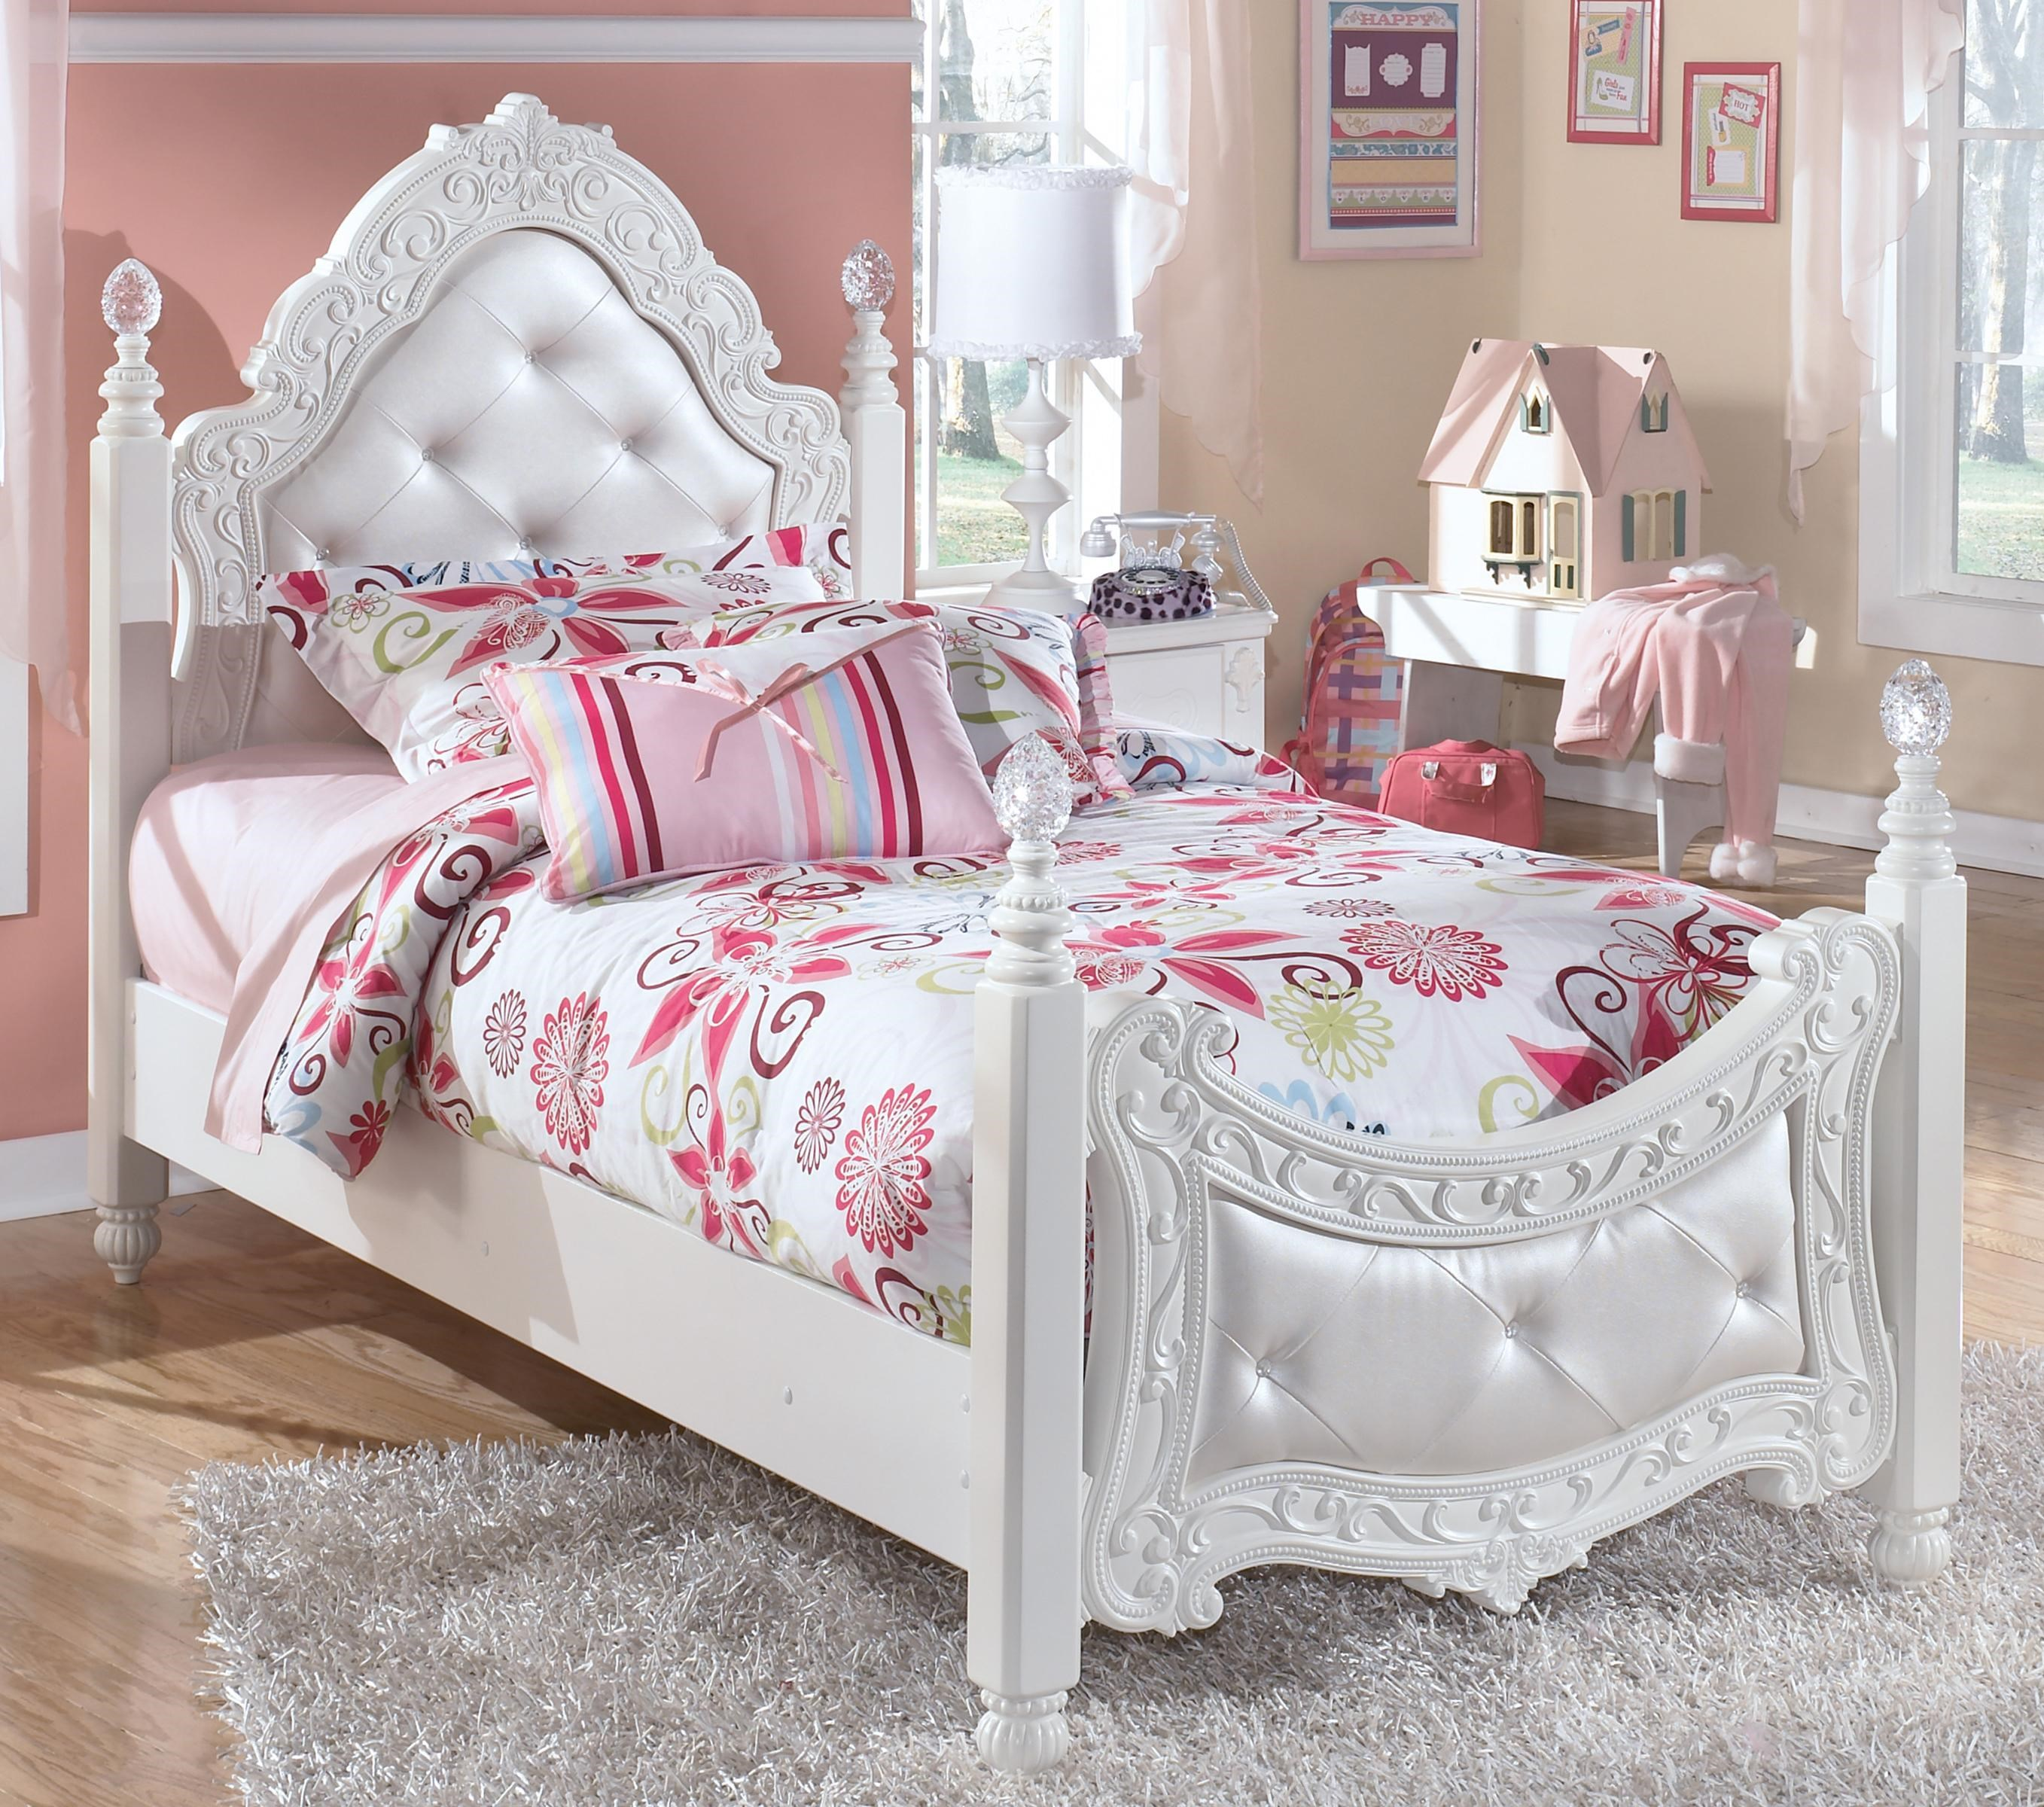 Signature Design By Ashley Exquisite Twin Ornate Poster Bed With Tufted Headboard Footboard Royal Furniture Upholstered Beds